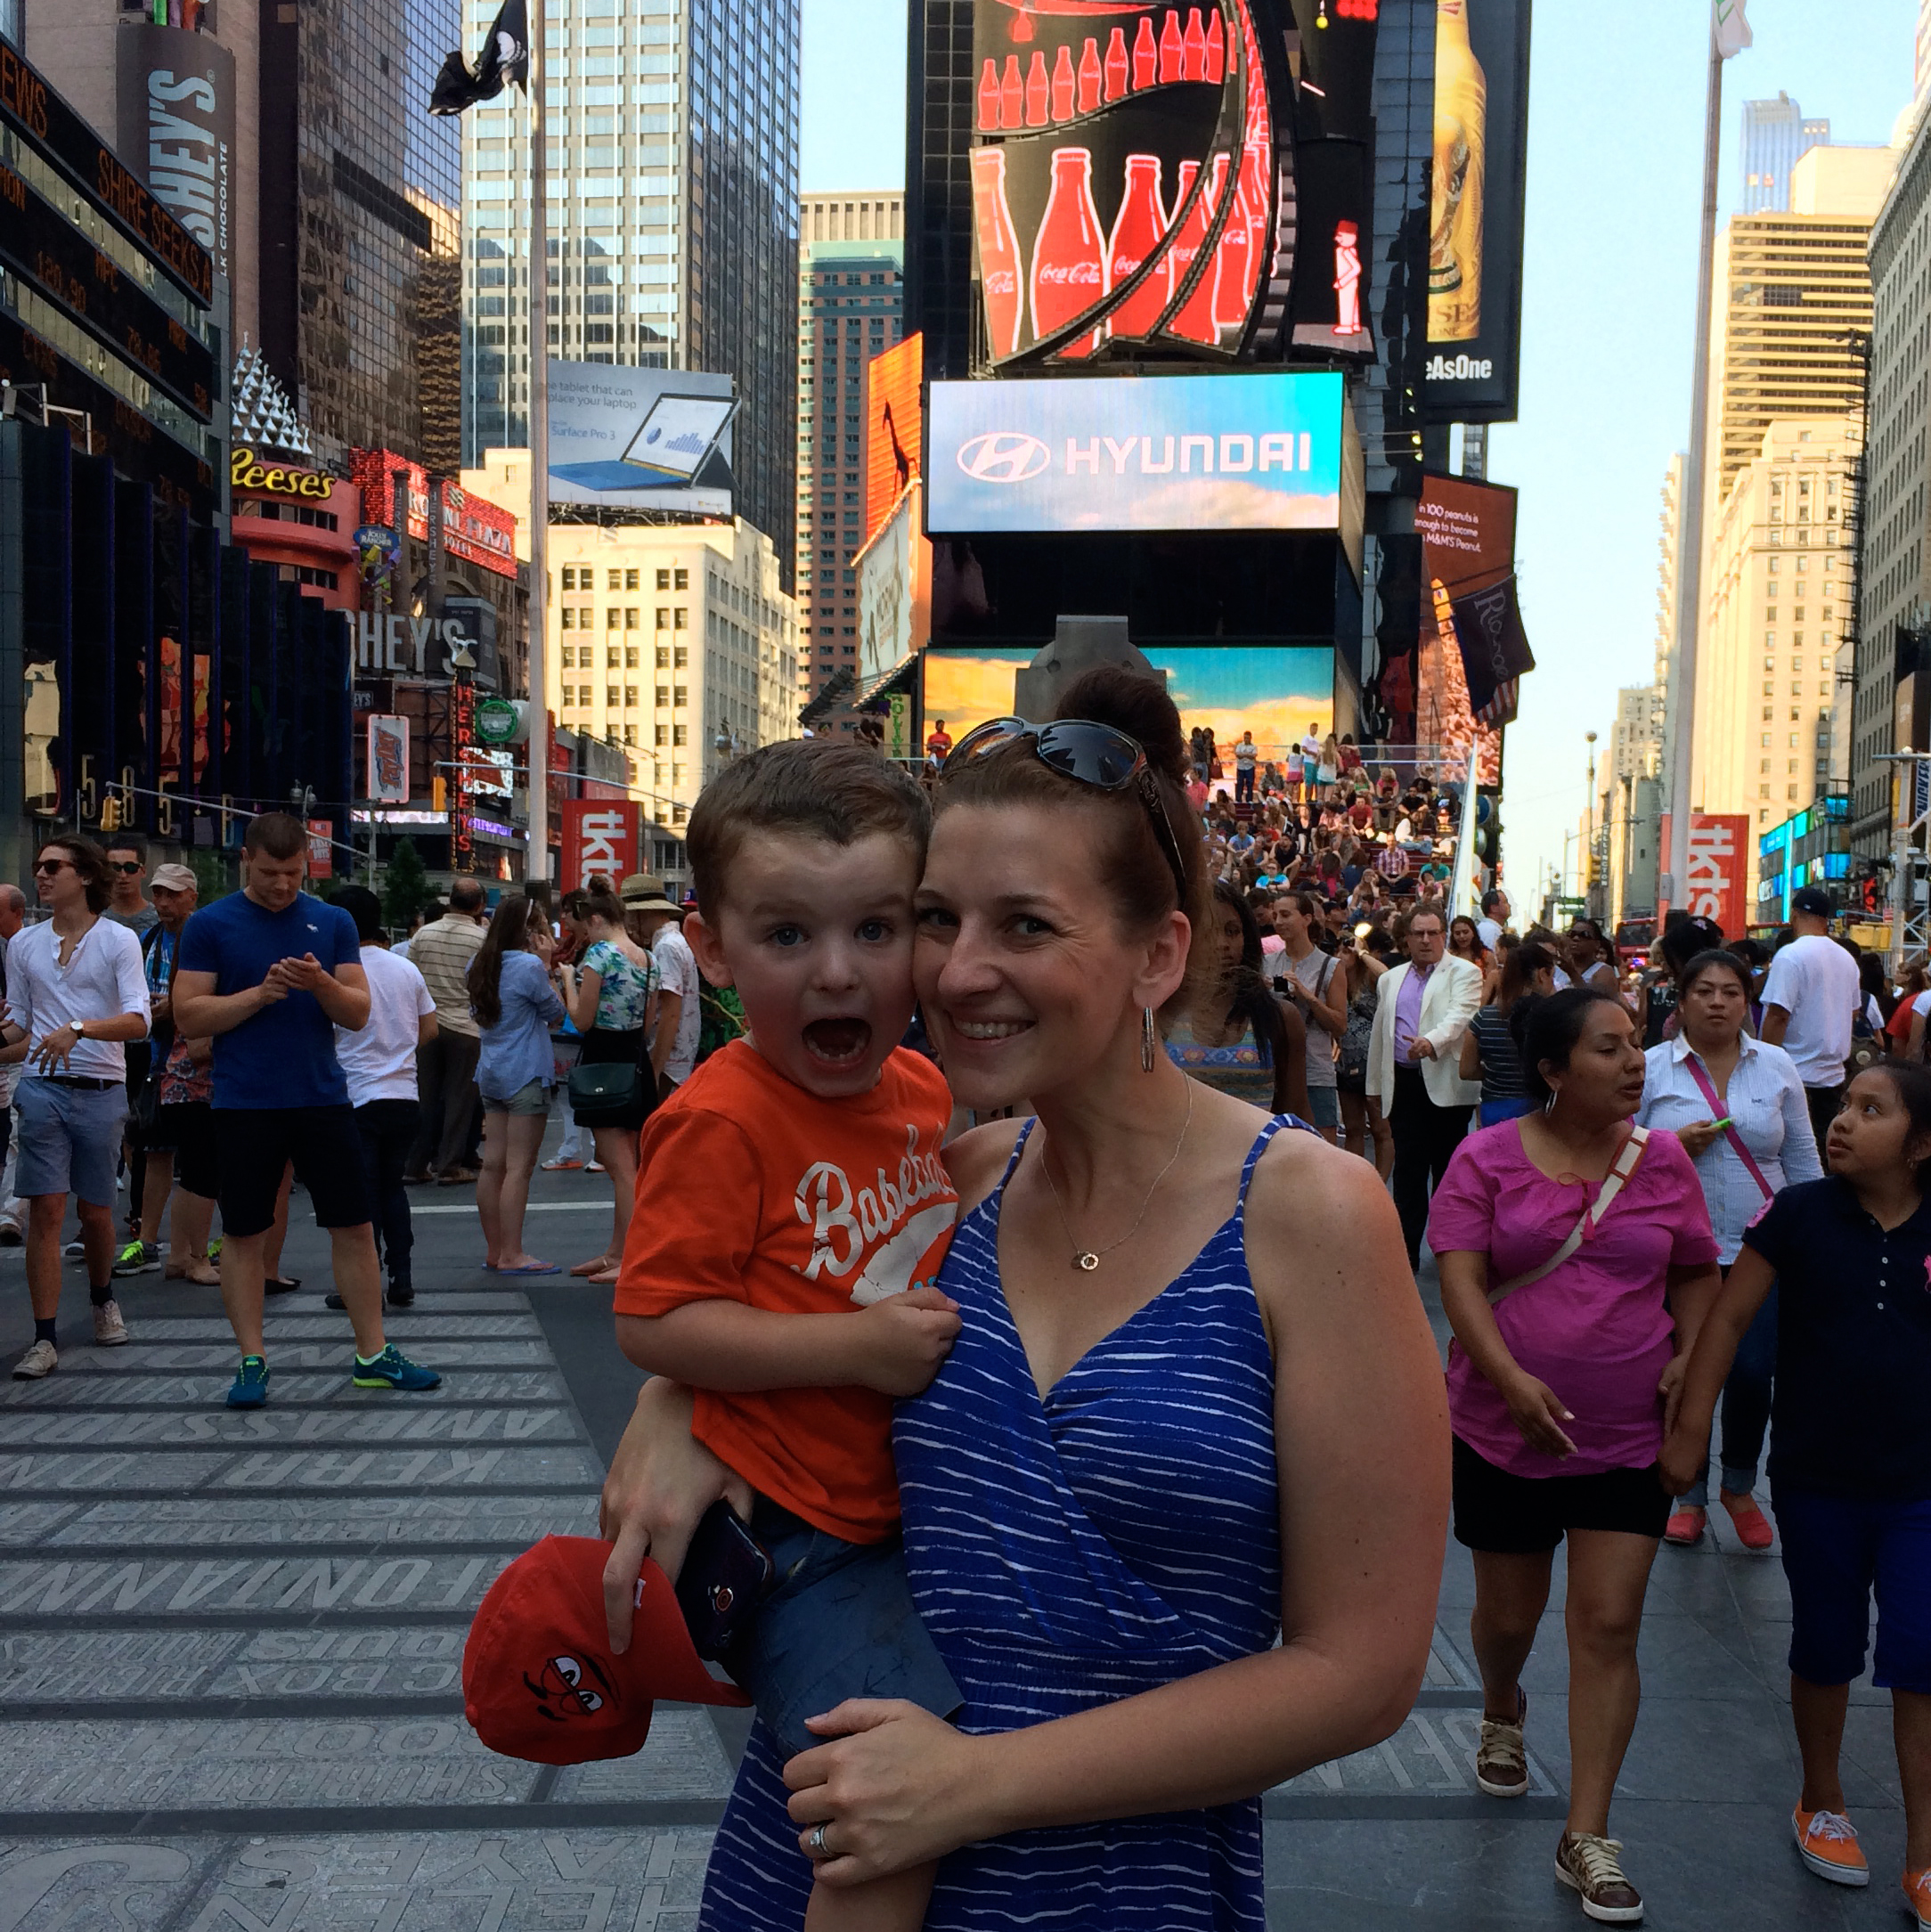 Christine and her mini in Times Square, New York City